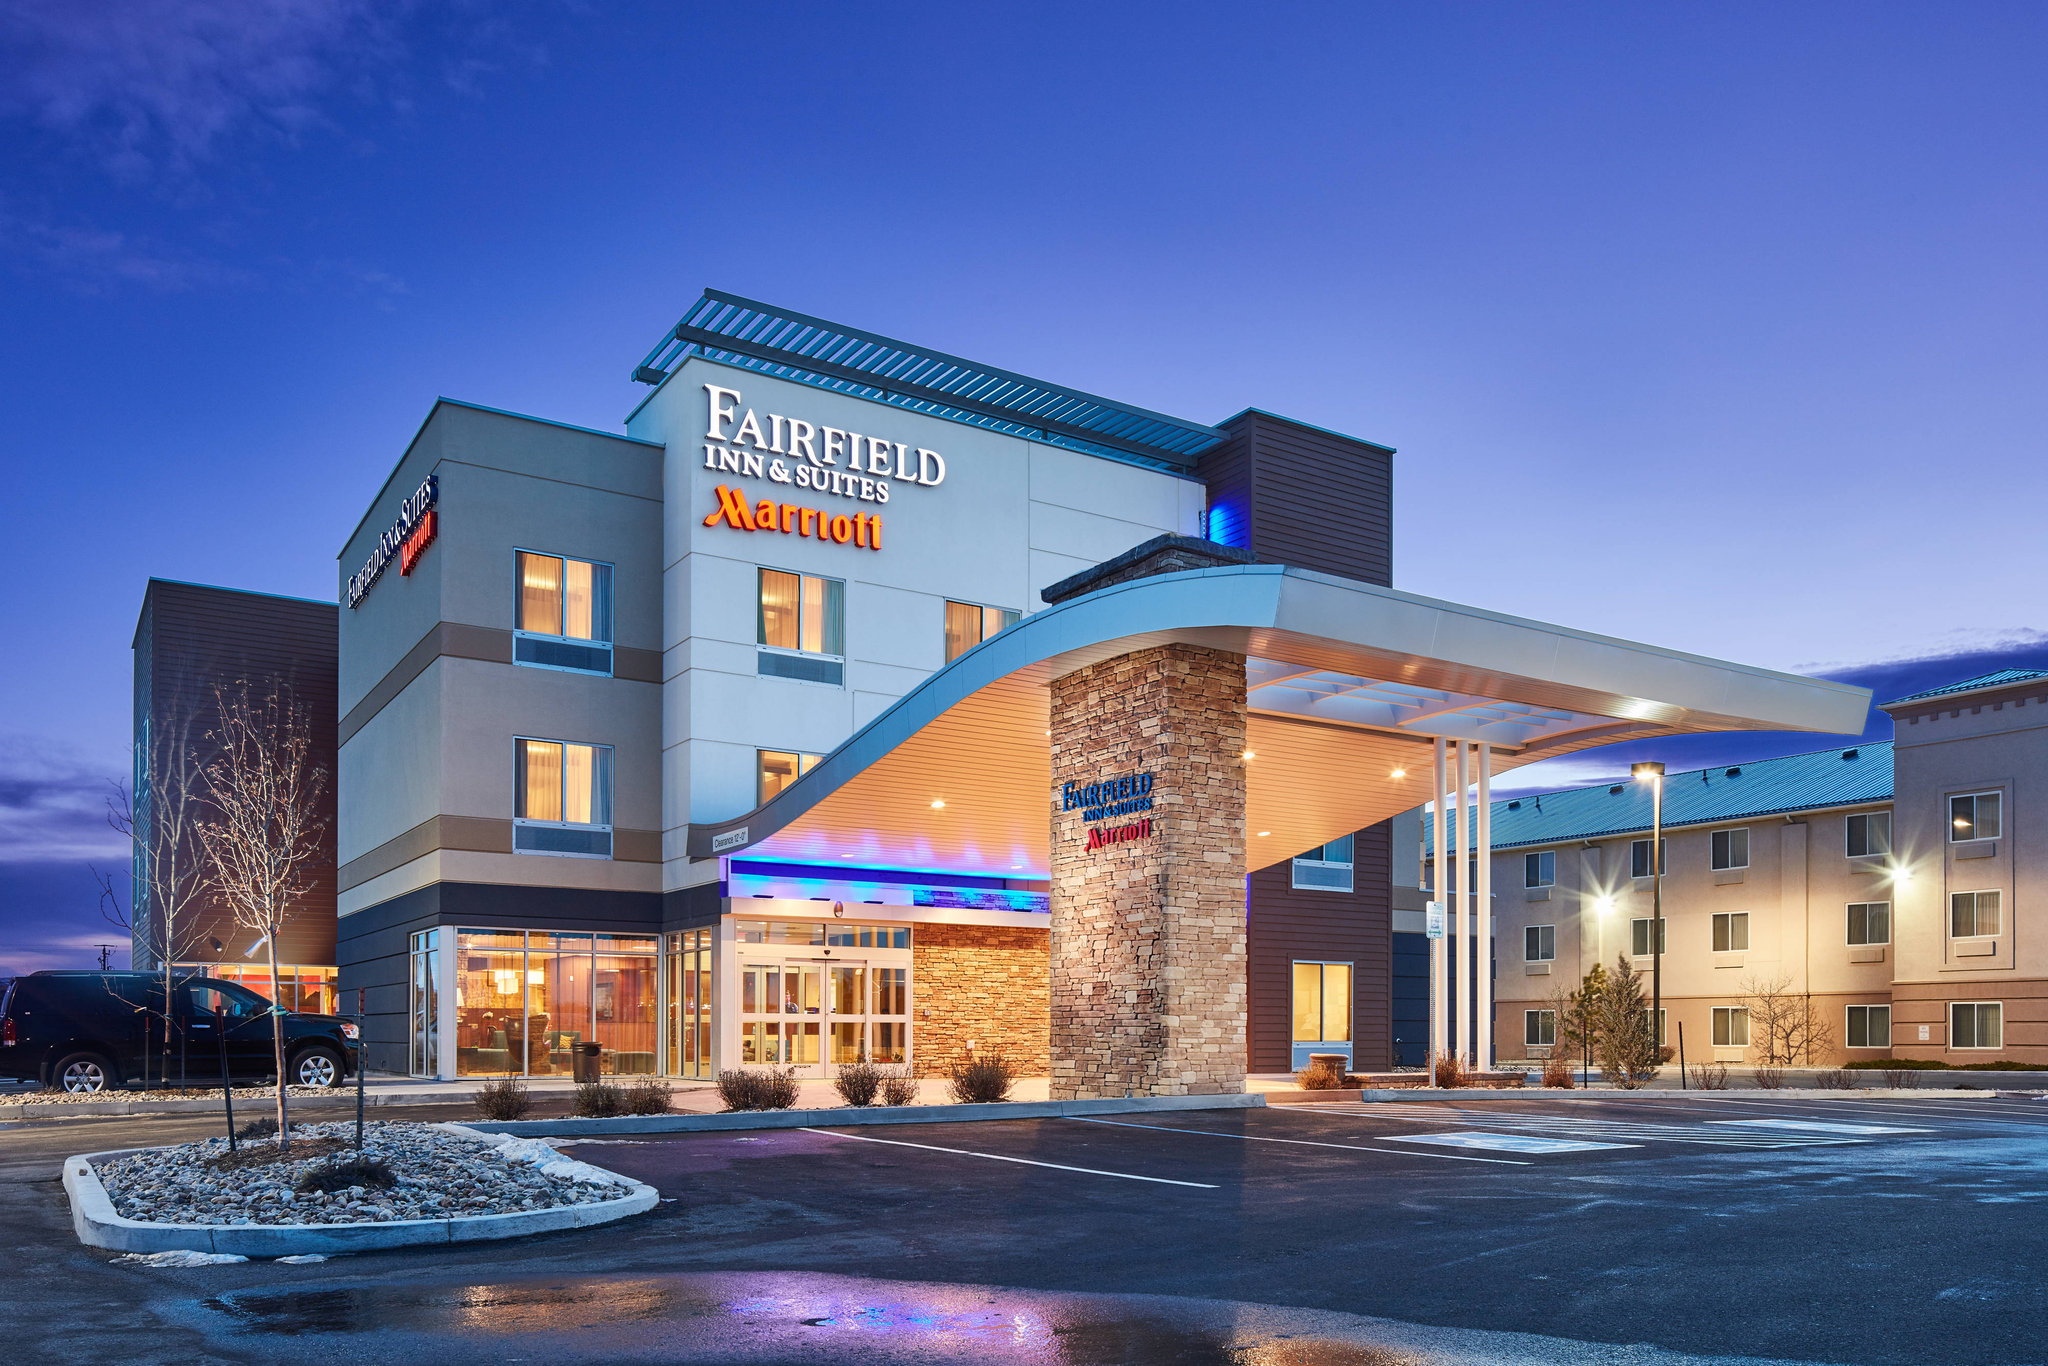 Fairfield Inn & Suites Rawlins